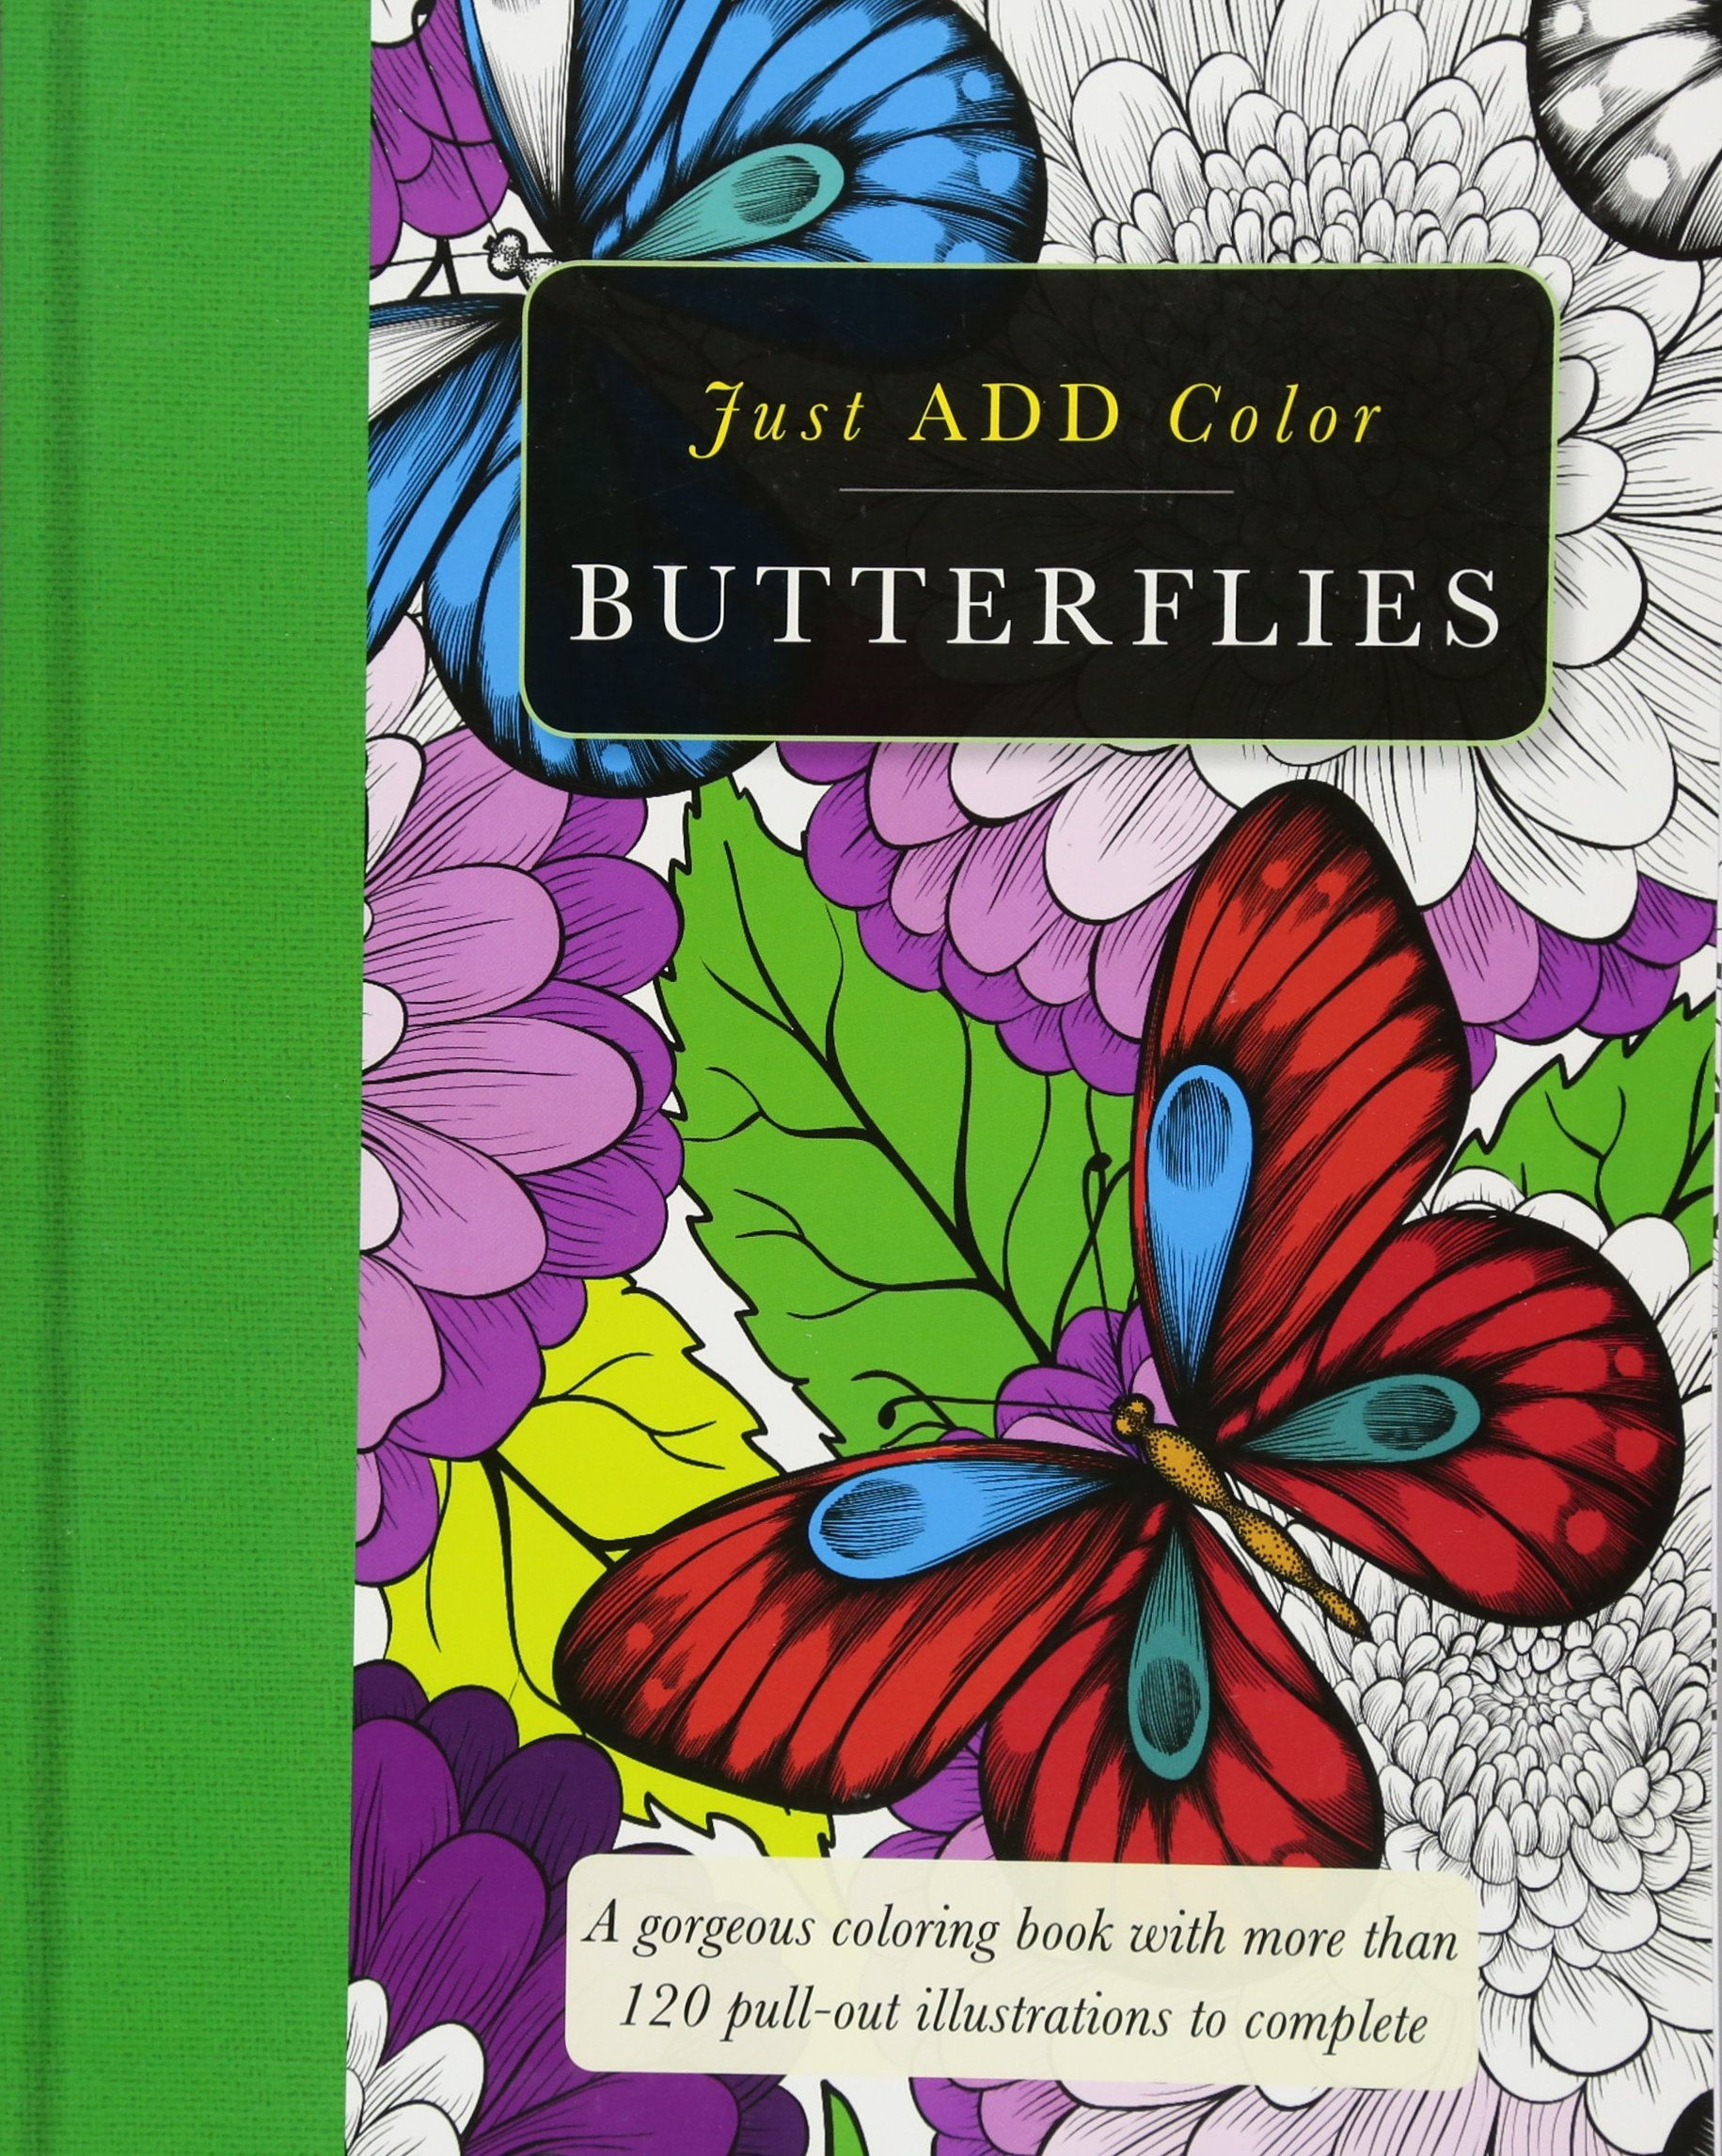 Read Online Butterflies: Gorgeous coloring books with more than 120 pull-out illustrations to complete (Just Add Color) pdf epub